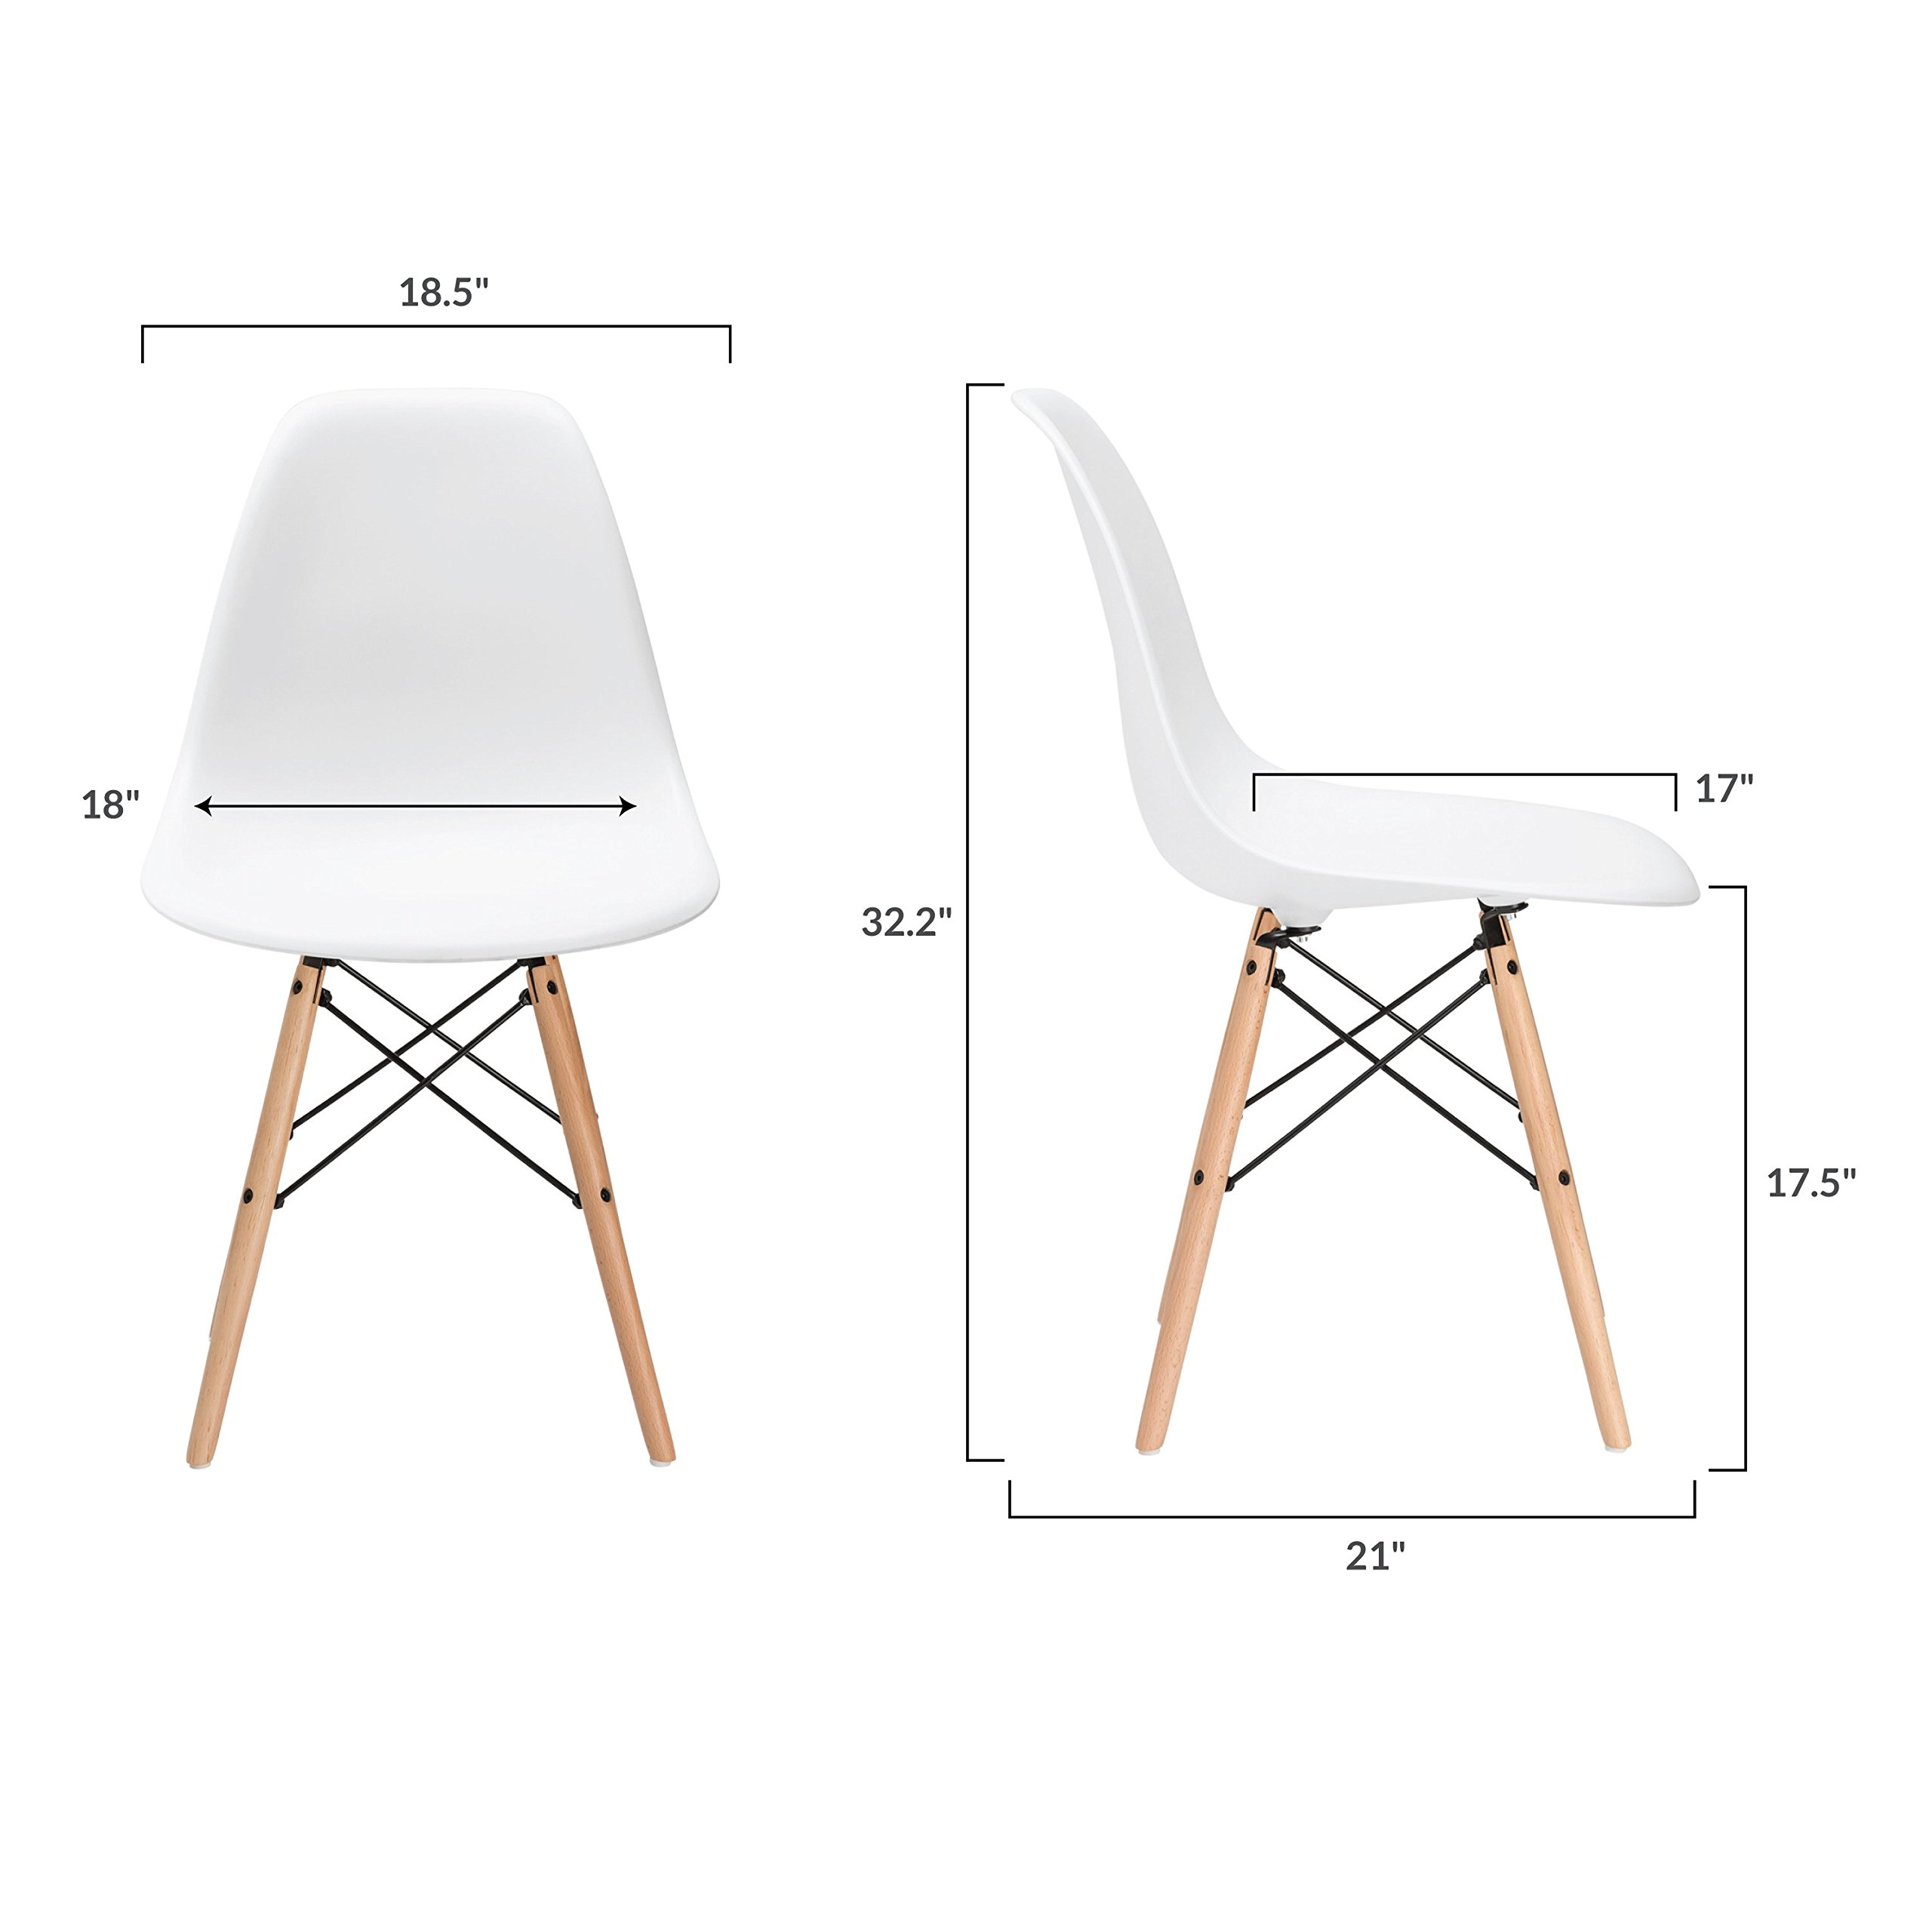 Poly and Bark Vortex Side Chair, White, Set of 2 by Poly and Bark (Image #6)